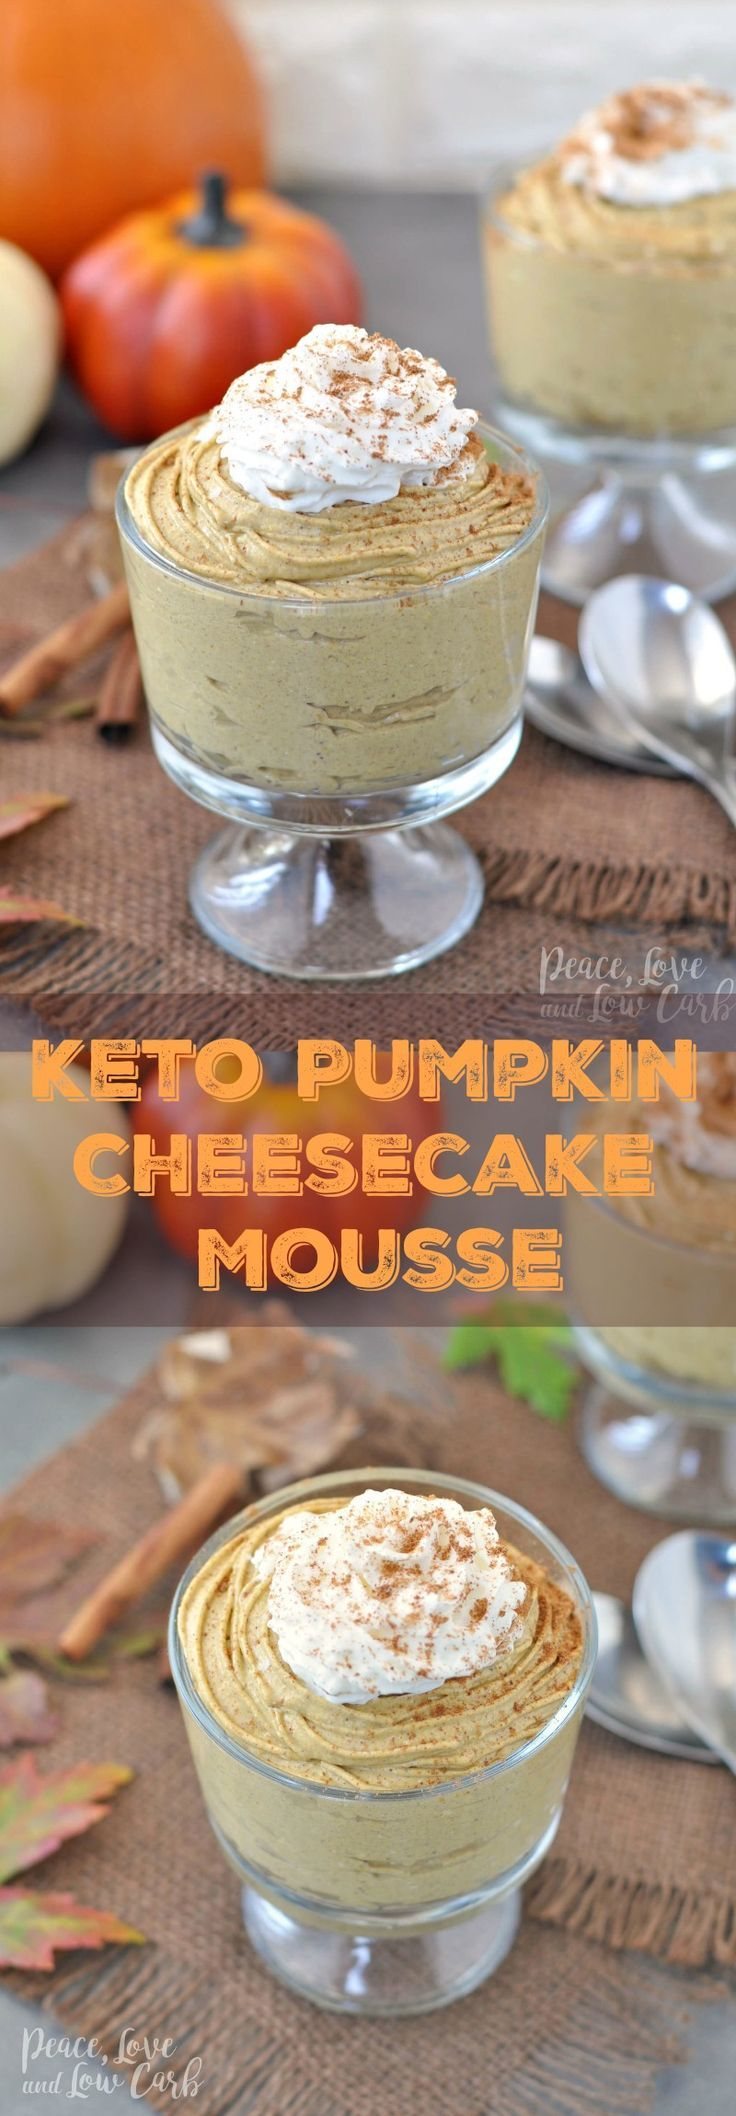 Keto Pumpkin Cheesecake Mousse - Peace Love and Low Carb via @PeaceLoveLoCarb